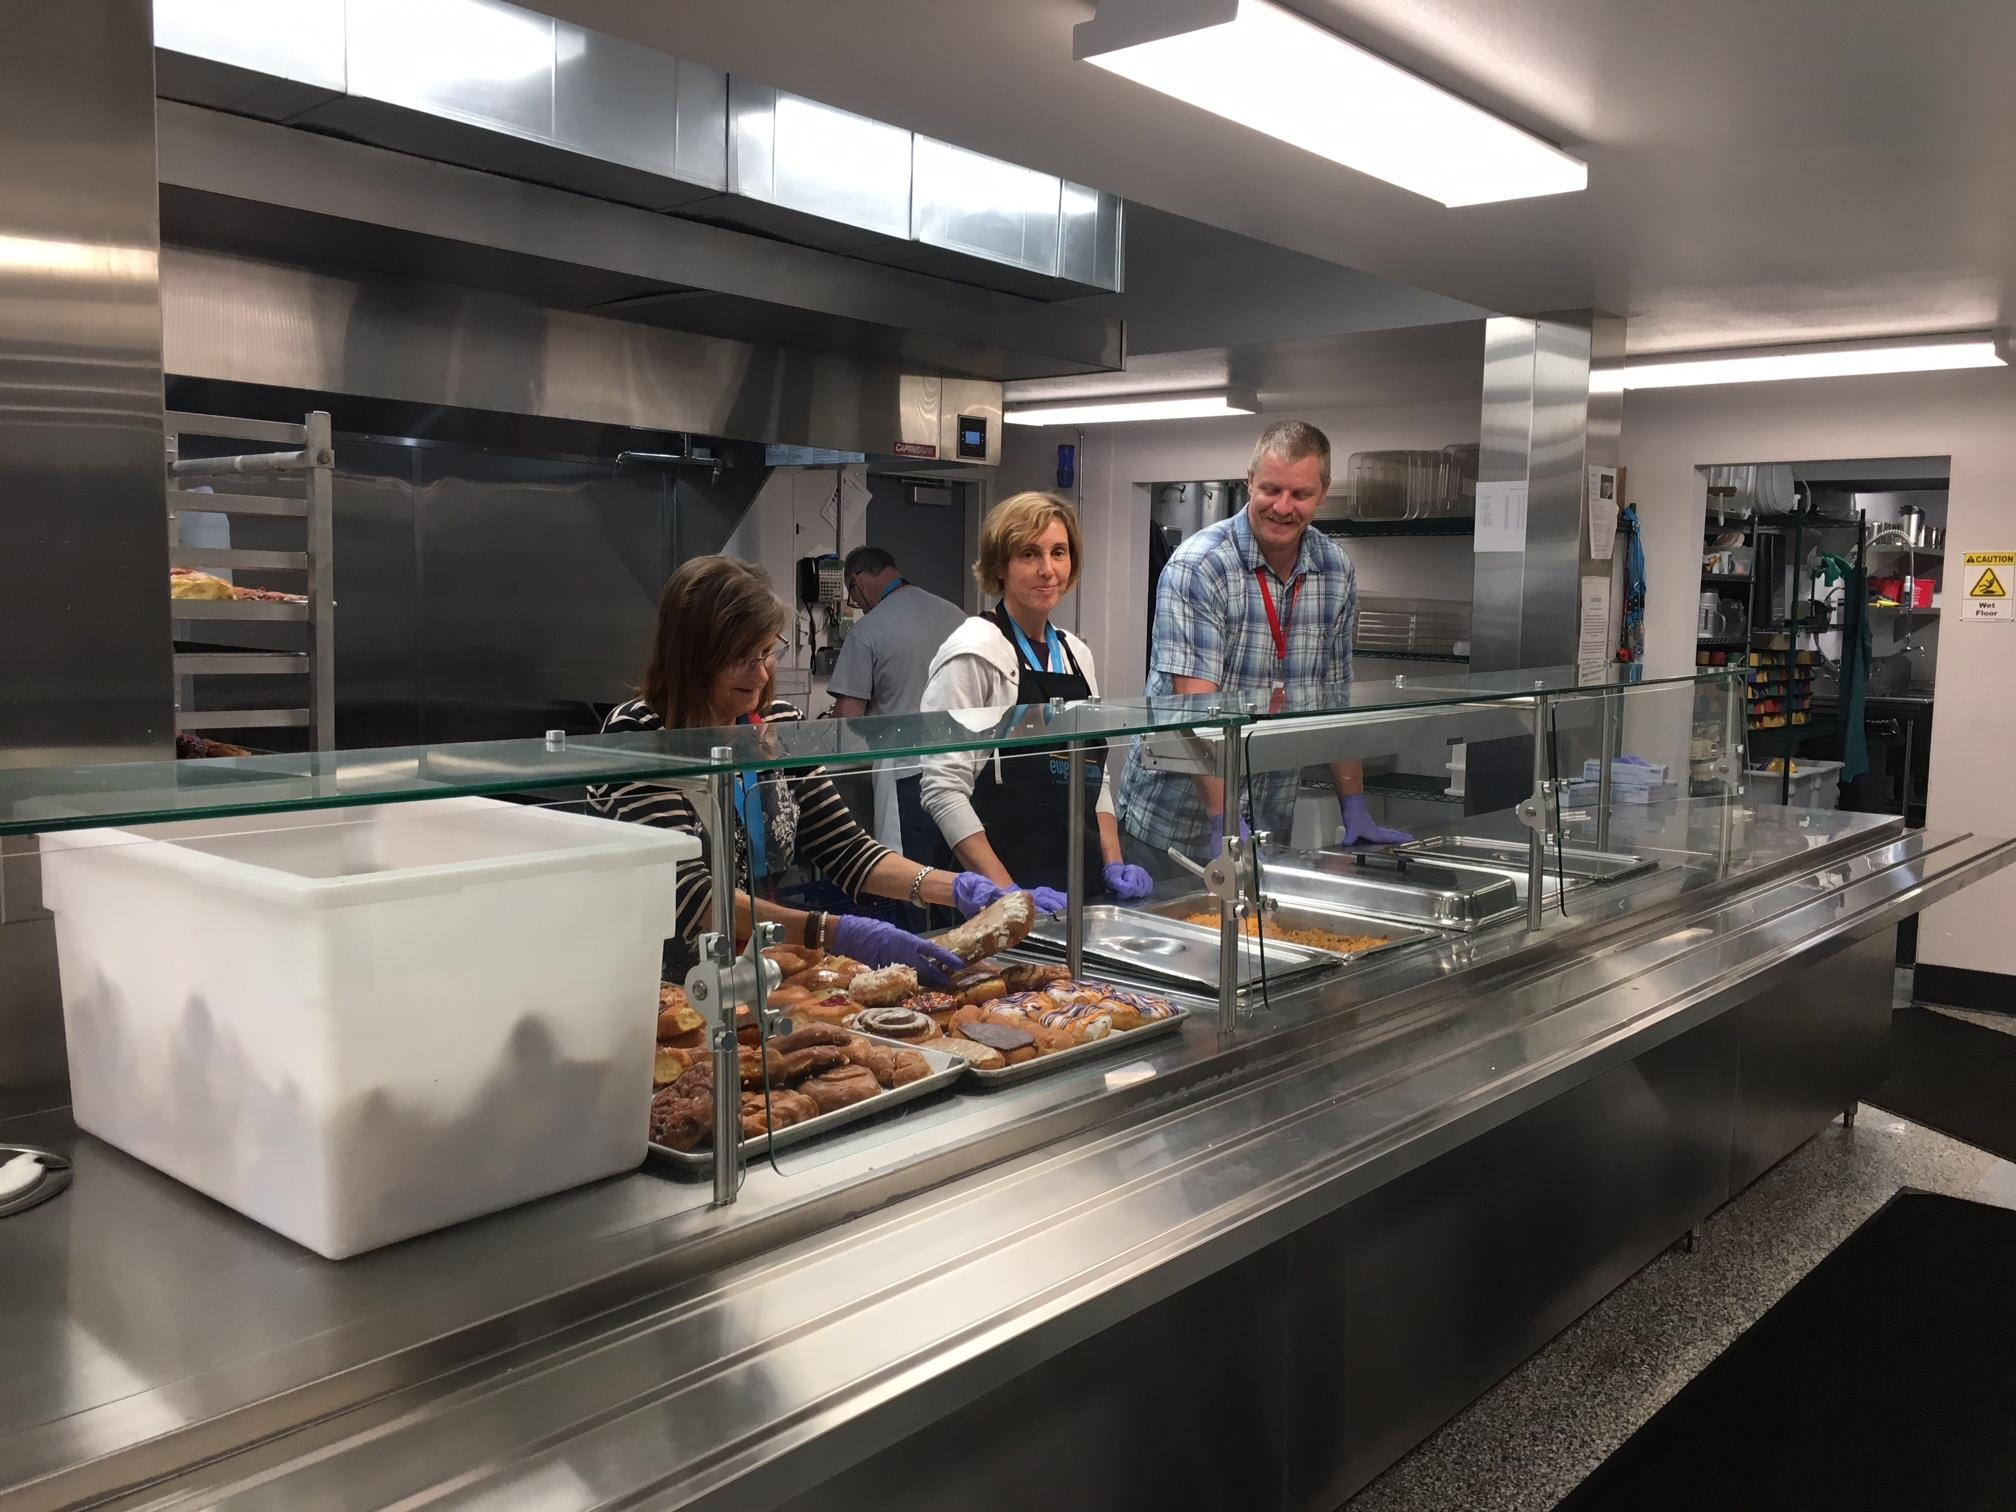 The new Eugene Mission kitchen is busier than ever. The kitchen was destroyed on June 15, 2016. The new kitchen opened December 2016. (SBG photo)